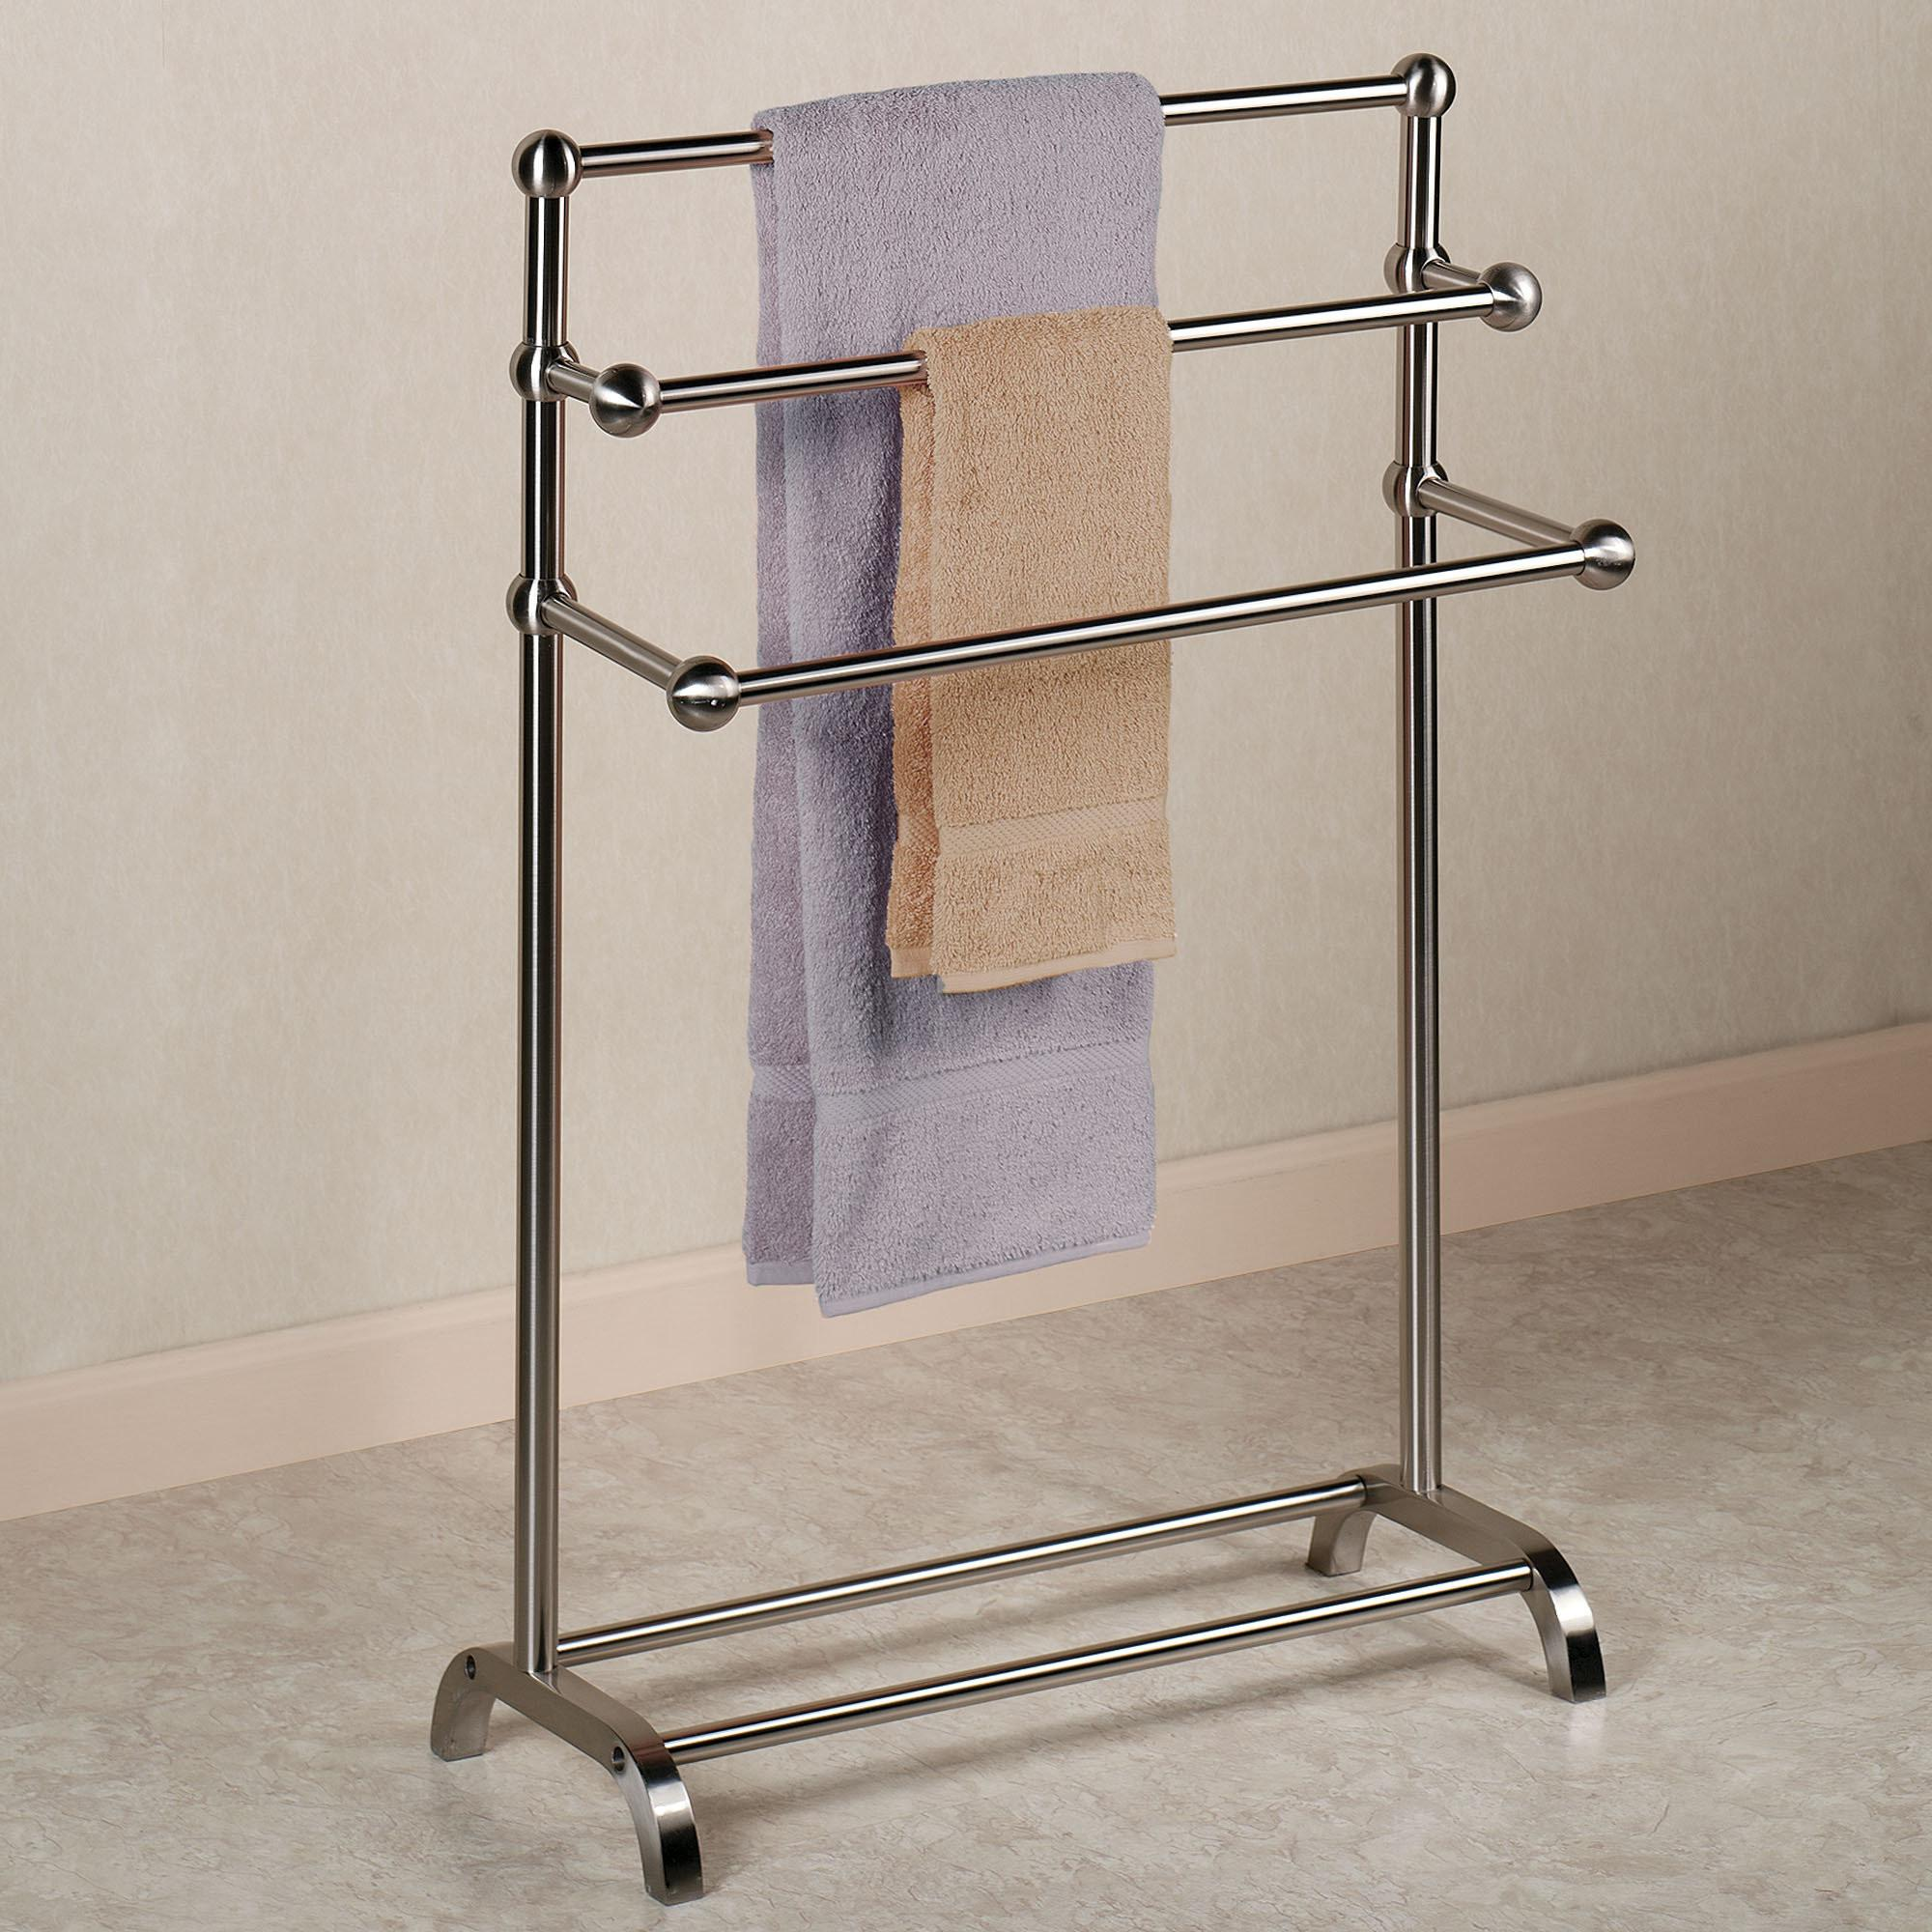 Standing Towel Rack Good Bad Idea Home